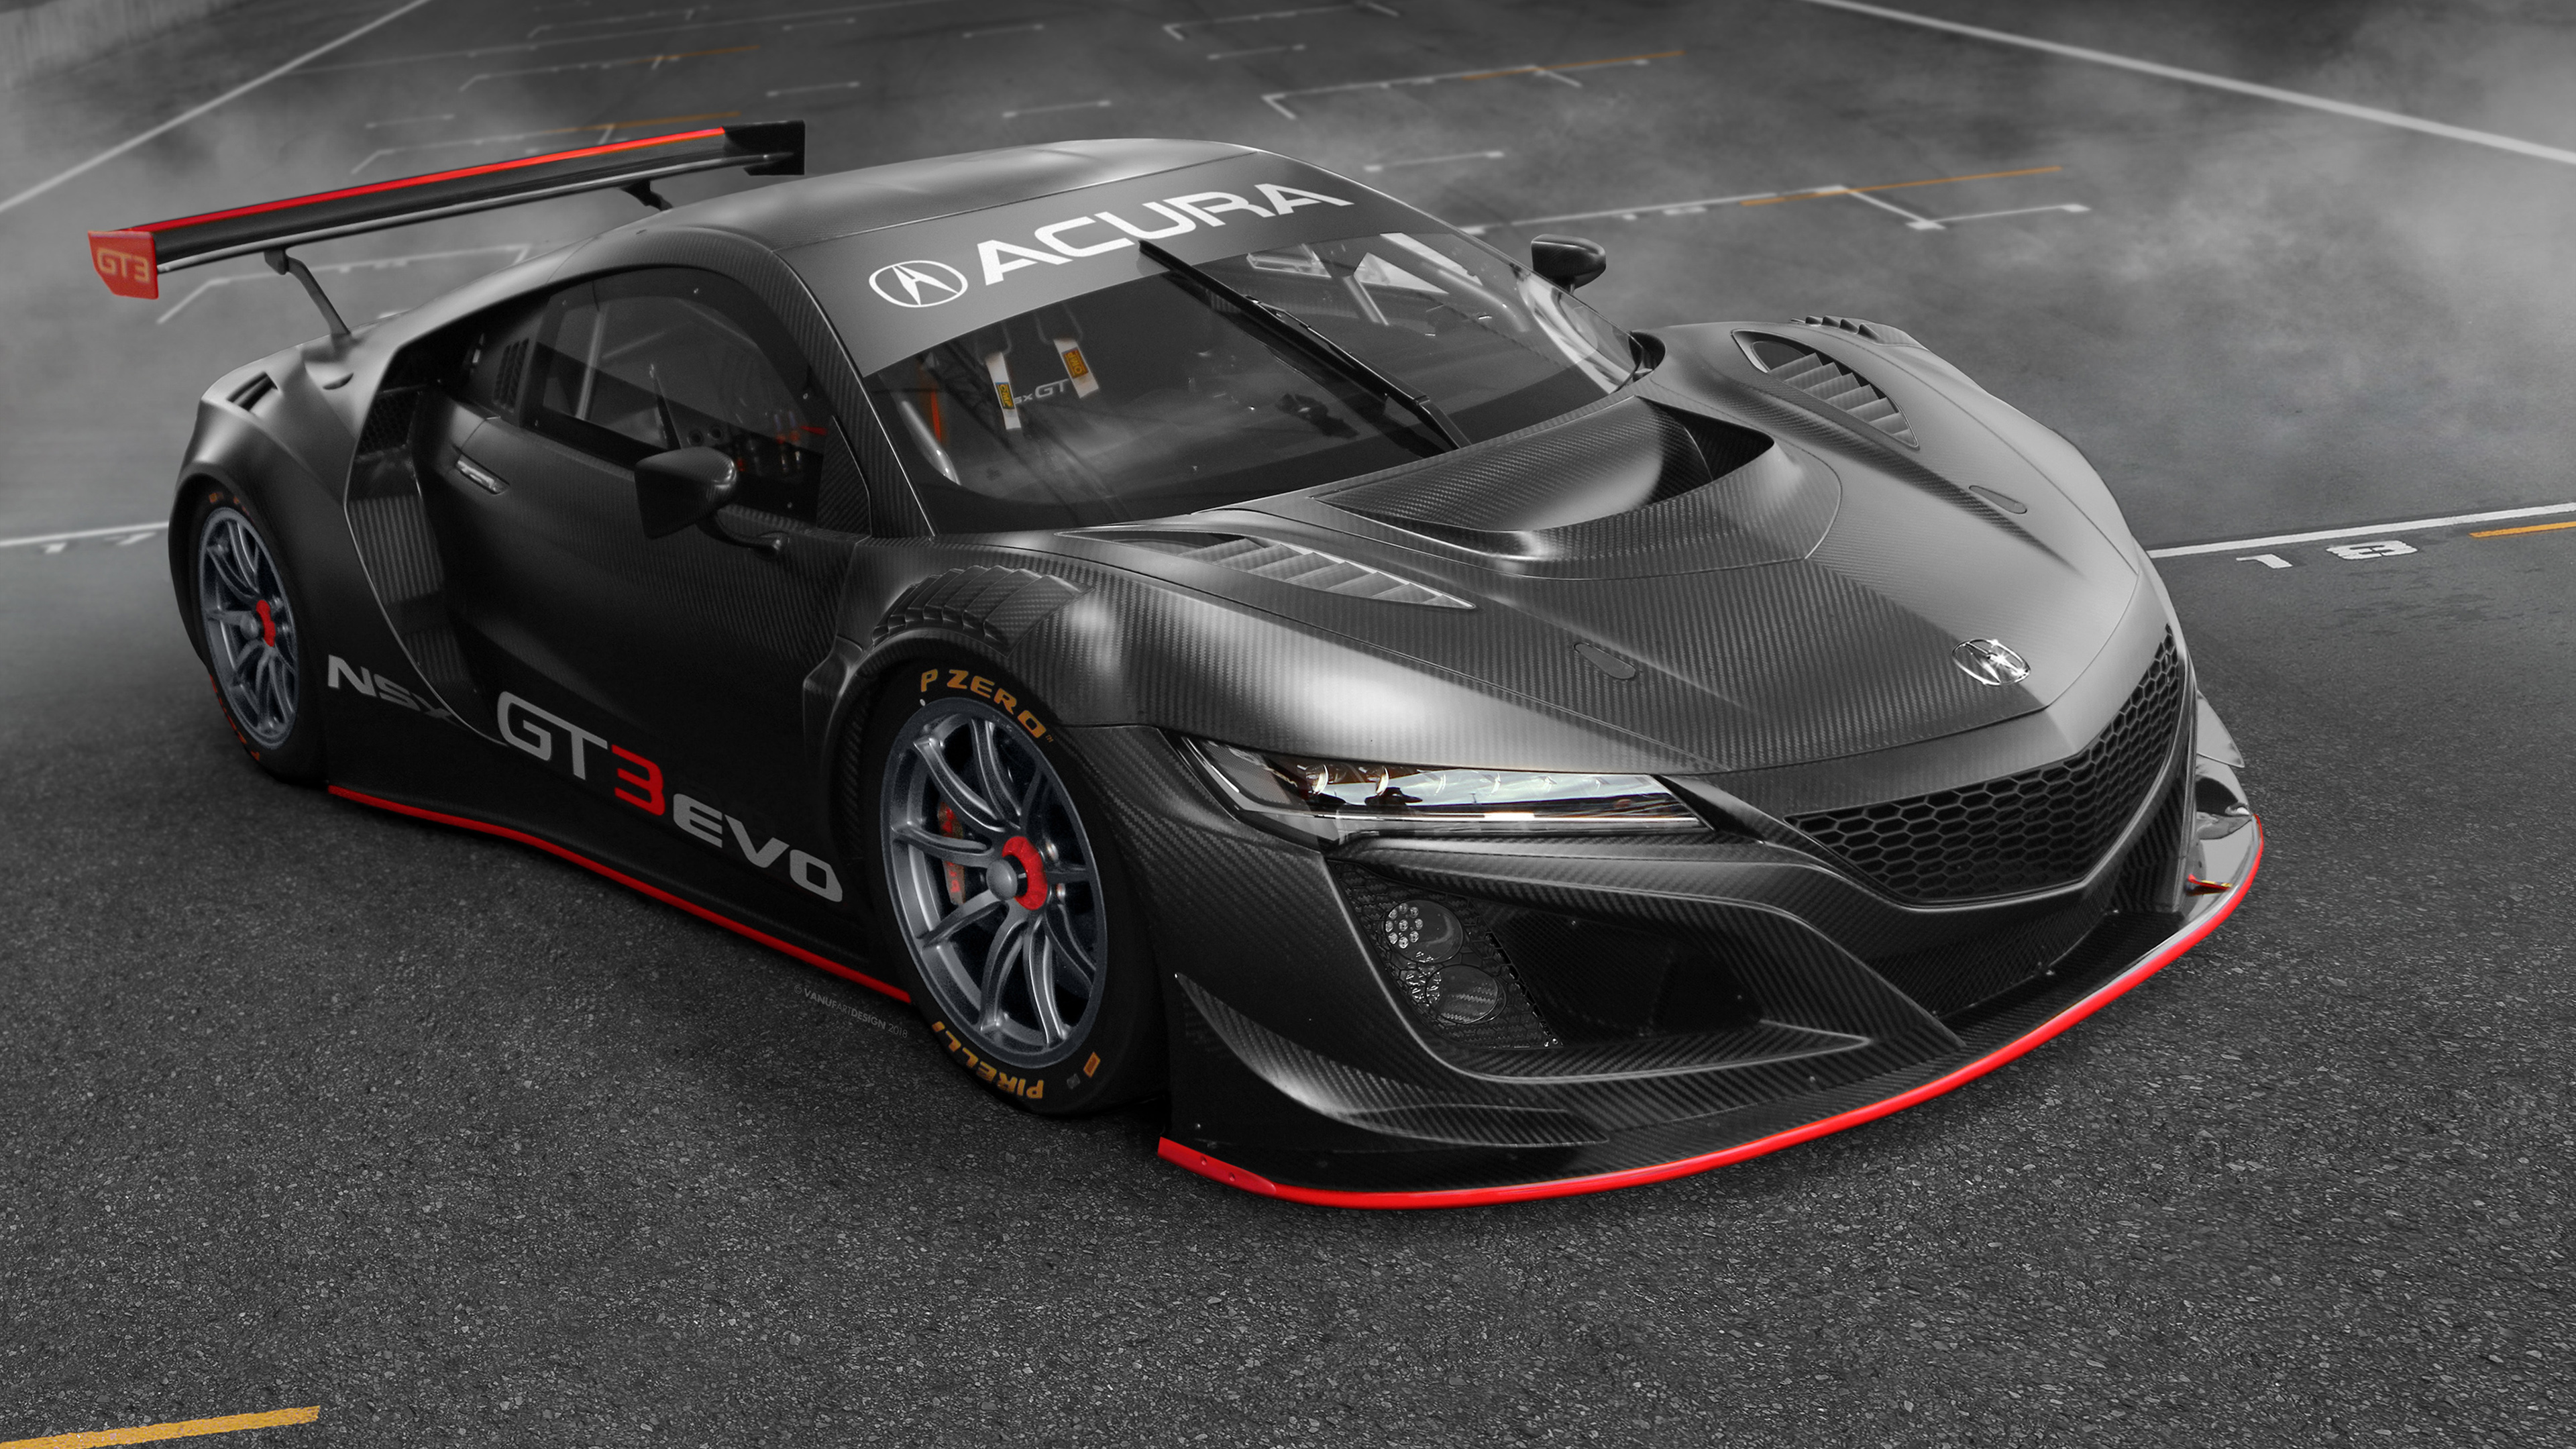 Full Hd Wallpapers  High Resolution Iphone 6s Acura Nsx Gt3 Evo 2019 4k Wallpapers Hd Wallpapers